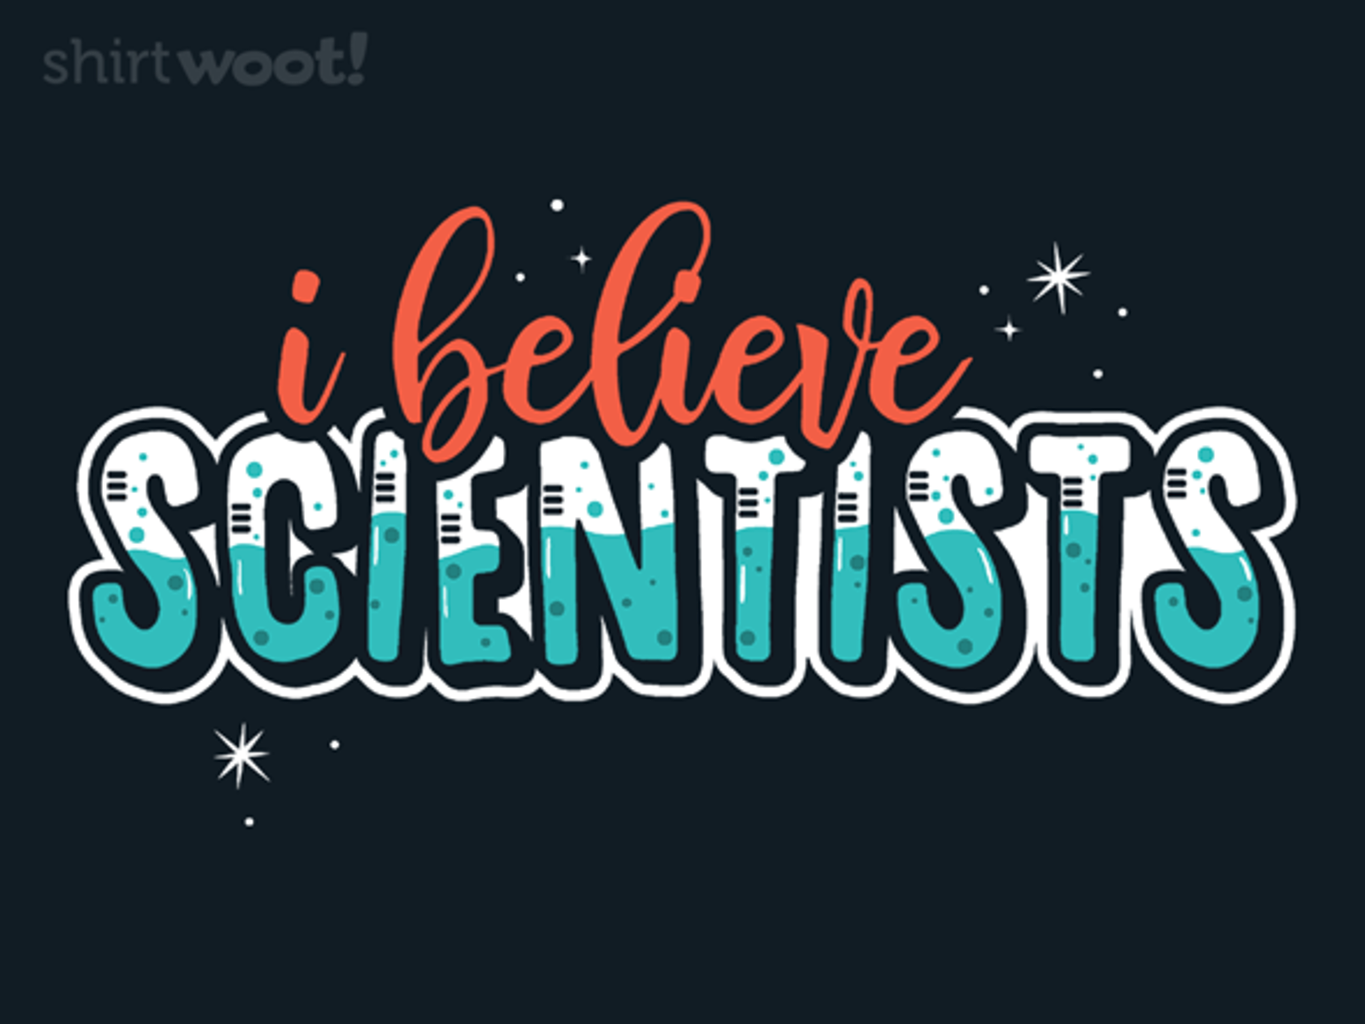 Woot!: I Believe Scientists